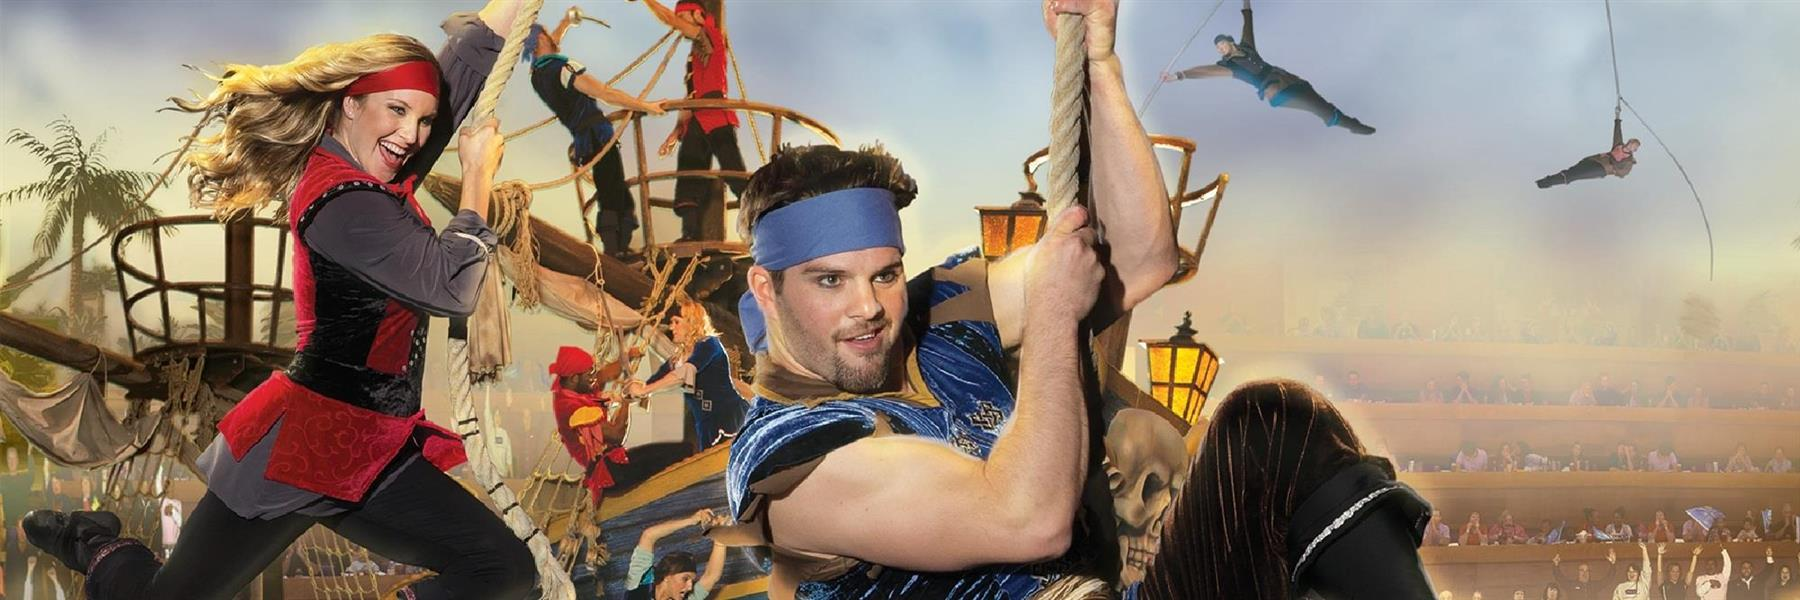 Pirates Voyage - Dinner & Show in Myrtle Beach, South Carolina